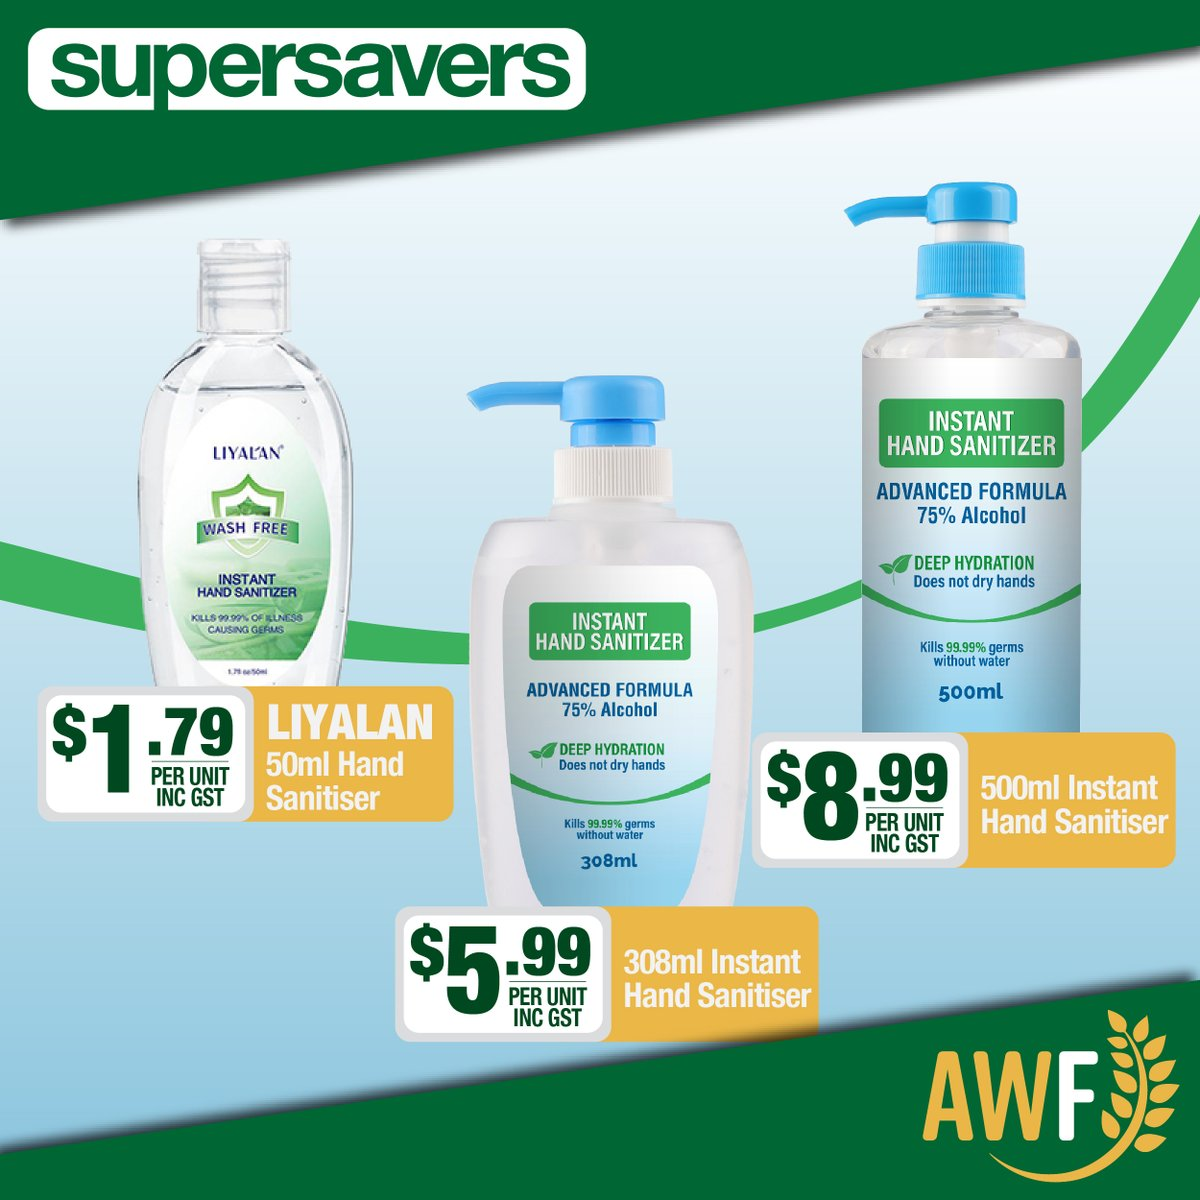 Check out this deal on Hand Sanitiser in this months Spooky Savers!  View it online: https://t.co/4JQiBKD4hX ------------- 📞 Call us: (08) 9041 1424 📧 Email: sales@allwaysfoods.com.au #supersavers #AWF #AllwaysFoods #warehouse #merredin https://t.co/svIB7BDSBA